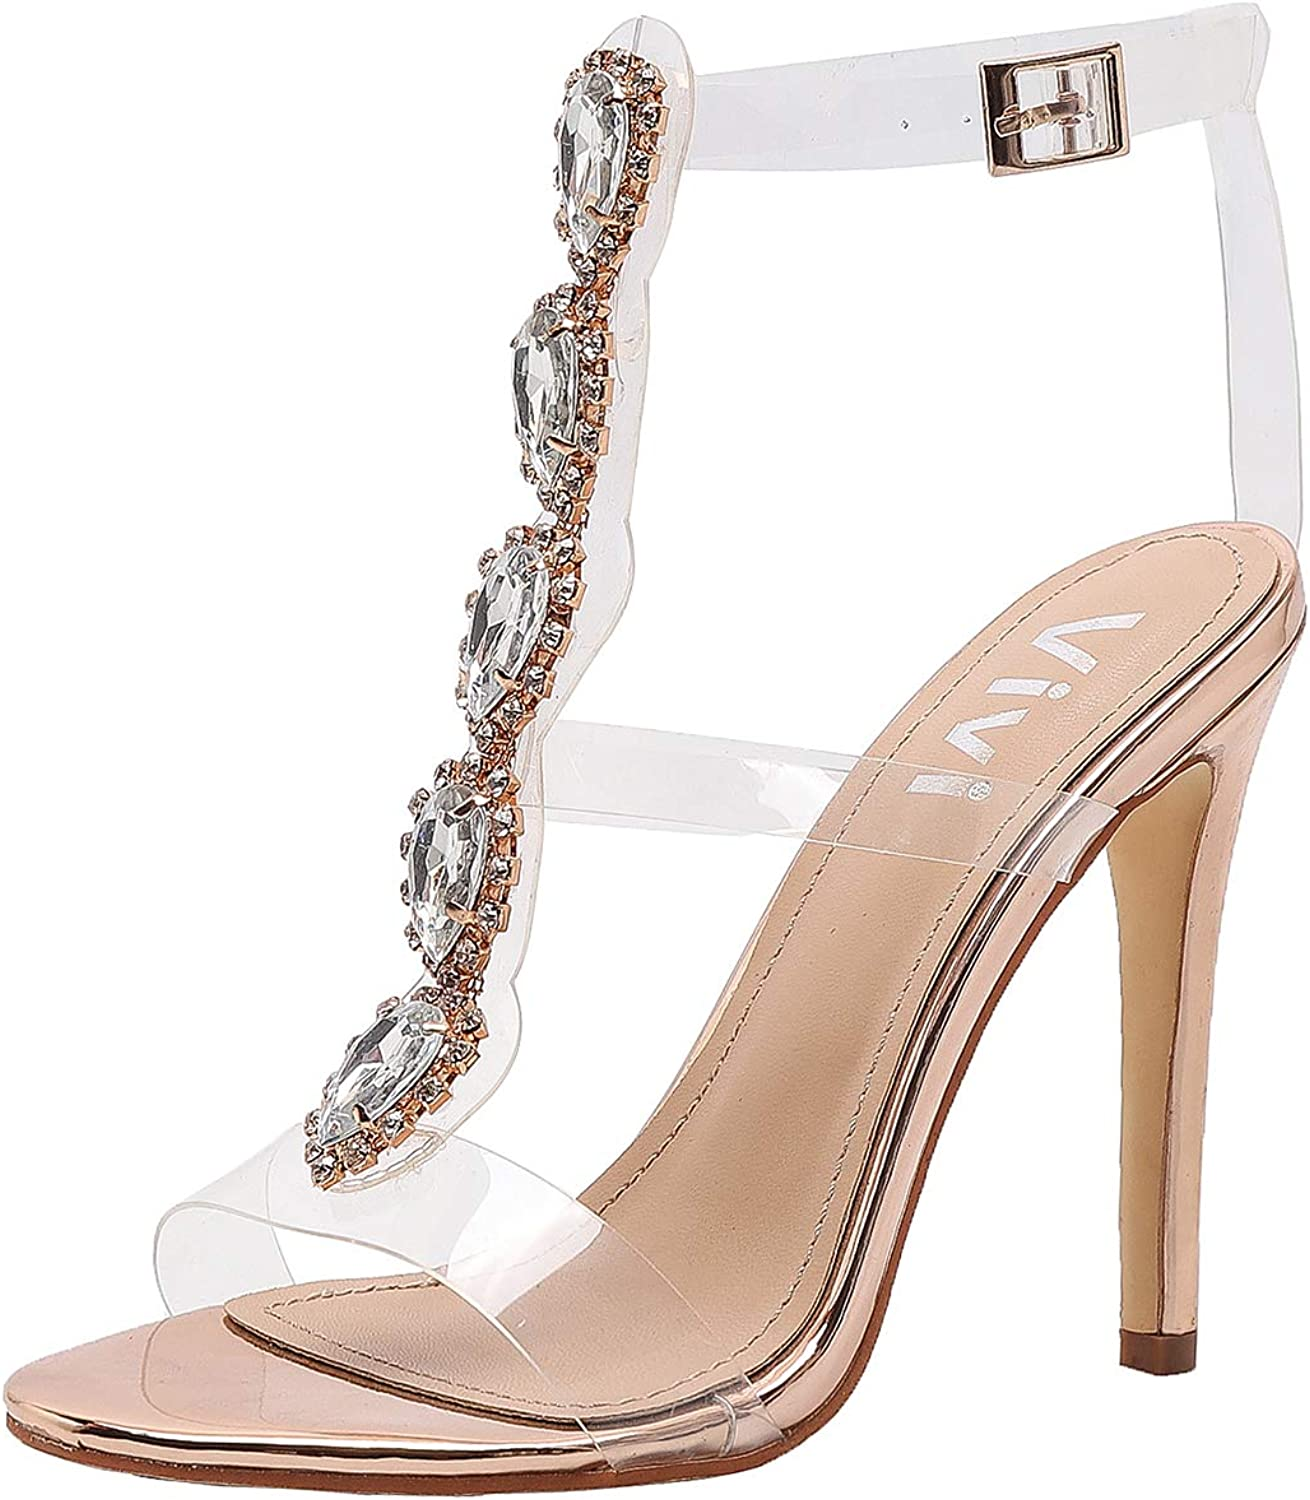 Vivi Womens gold Peep Toe Ankle Strap Buckle Rhinestones Clear Stiletto High Heels Size 10